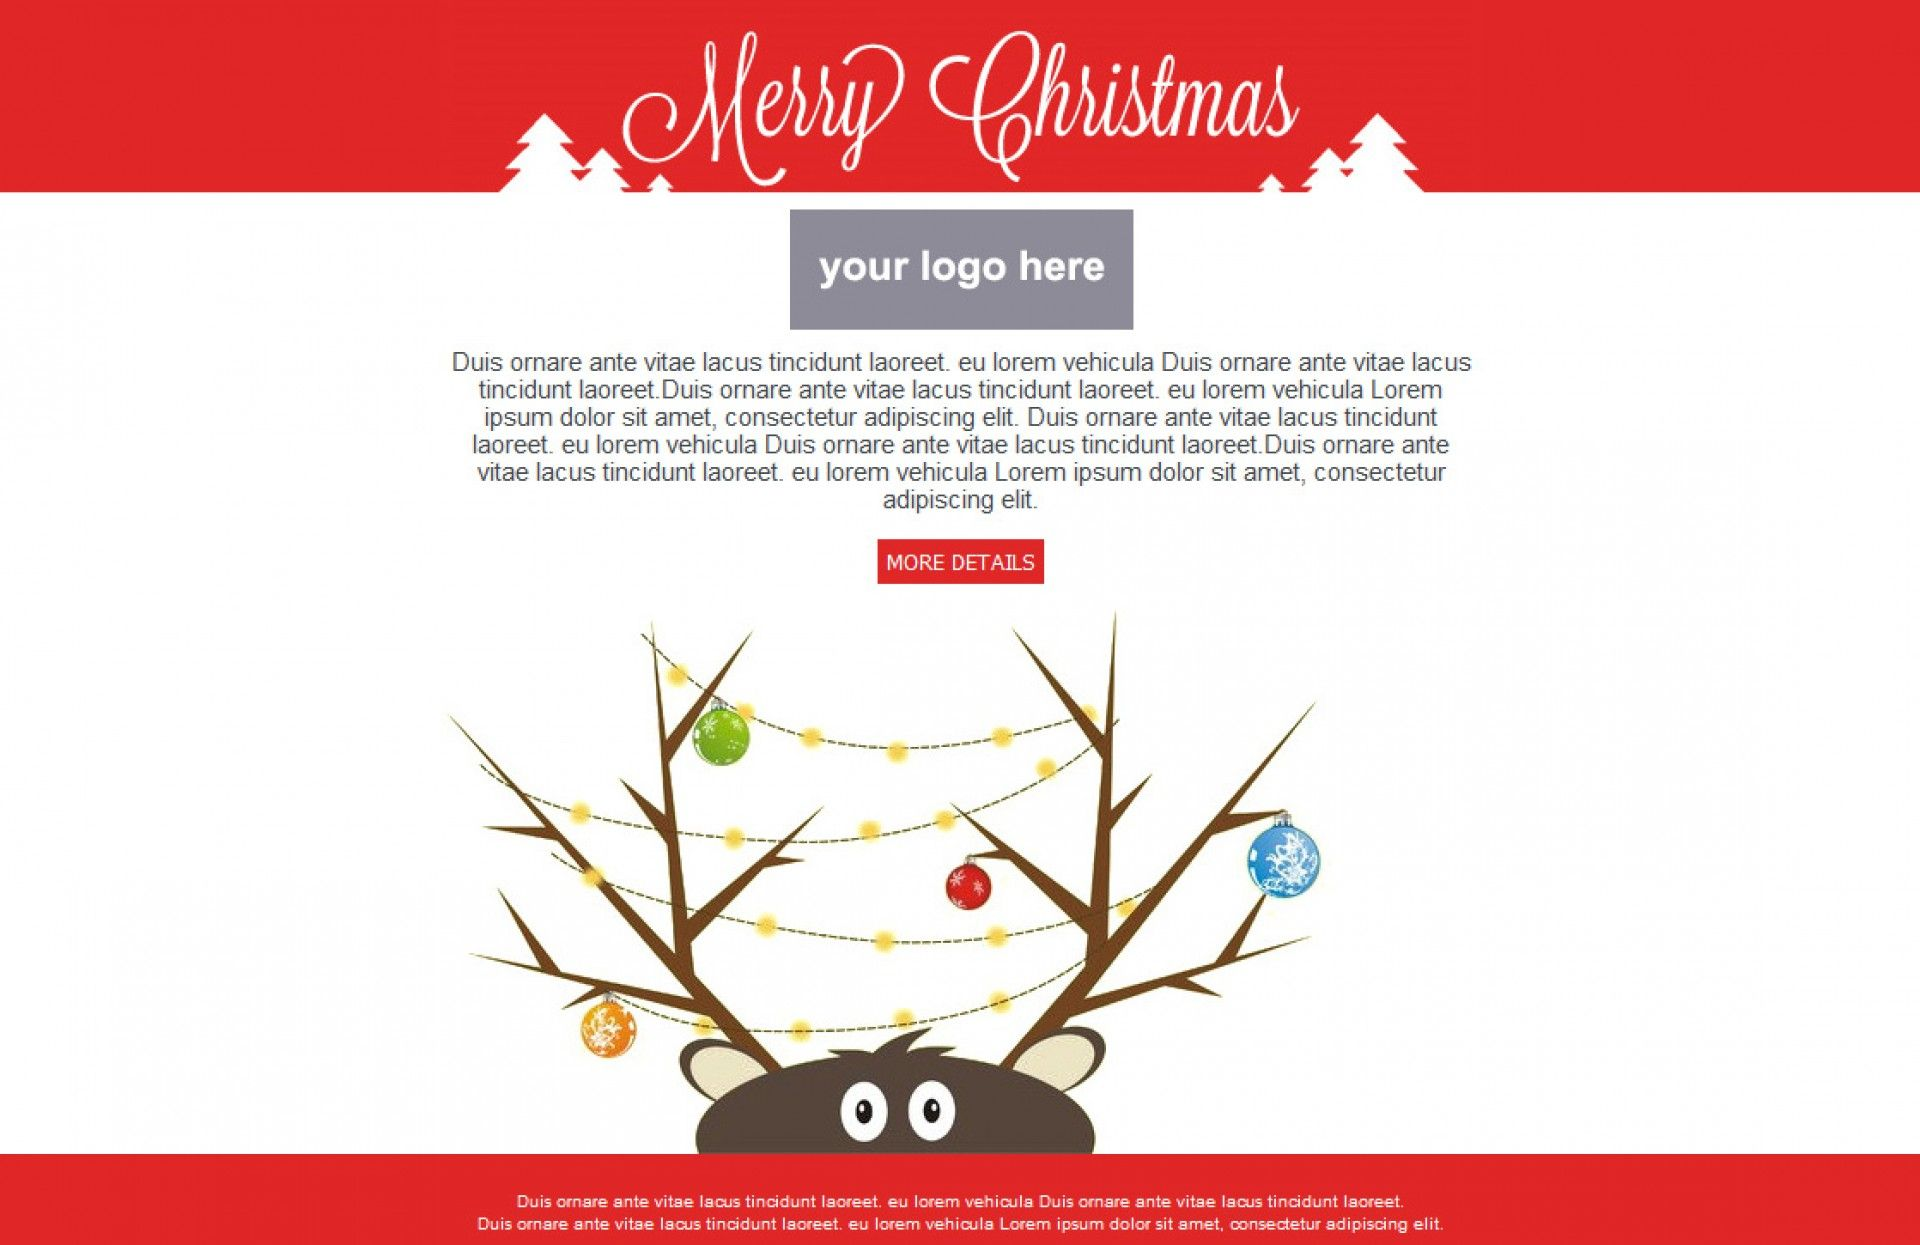 The Remarkable 012 Christmas Email Template Outlook Offers Holiday Mail Inside Holiday Card E Email Christmas Cards Holiday Mailing Email Invitations Templates